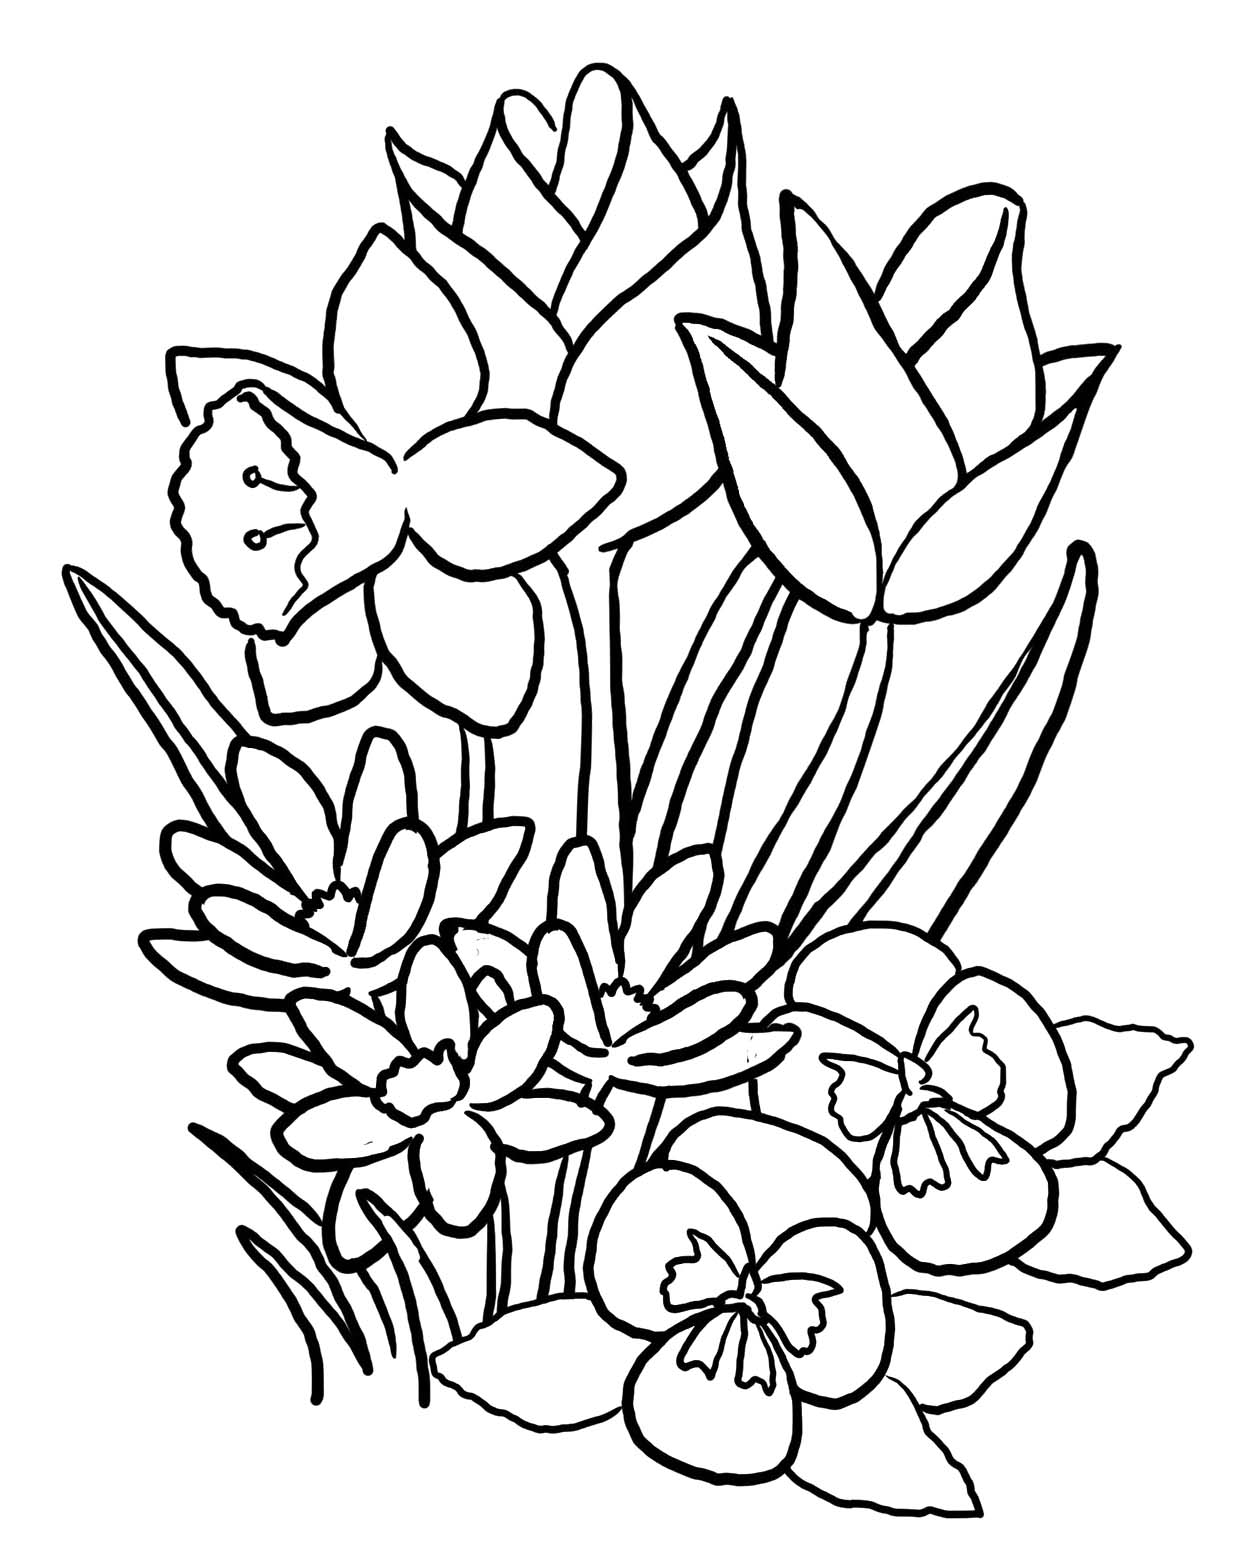 picture of flowers to colour free printable flower coloring pages for kids best flowers to colour picture of